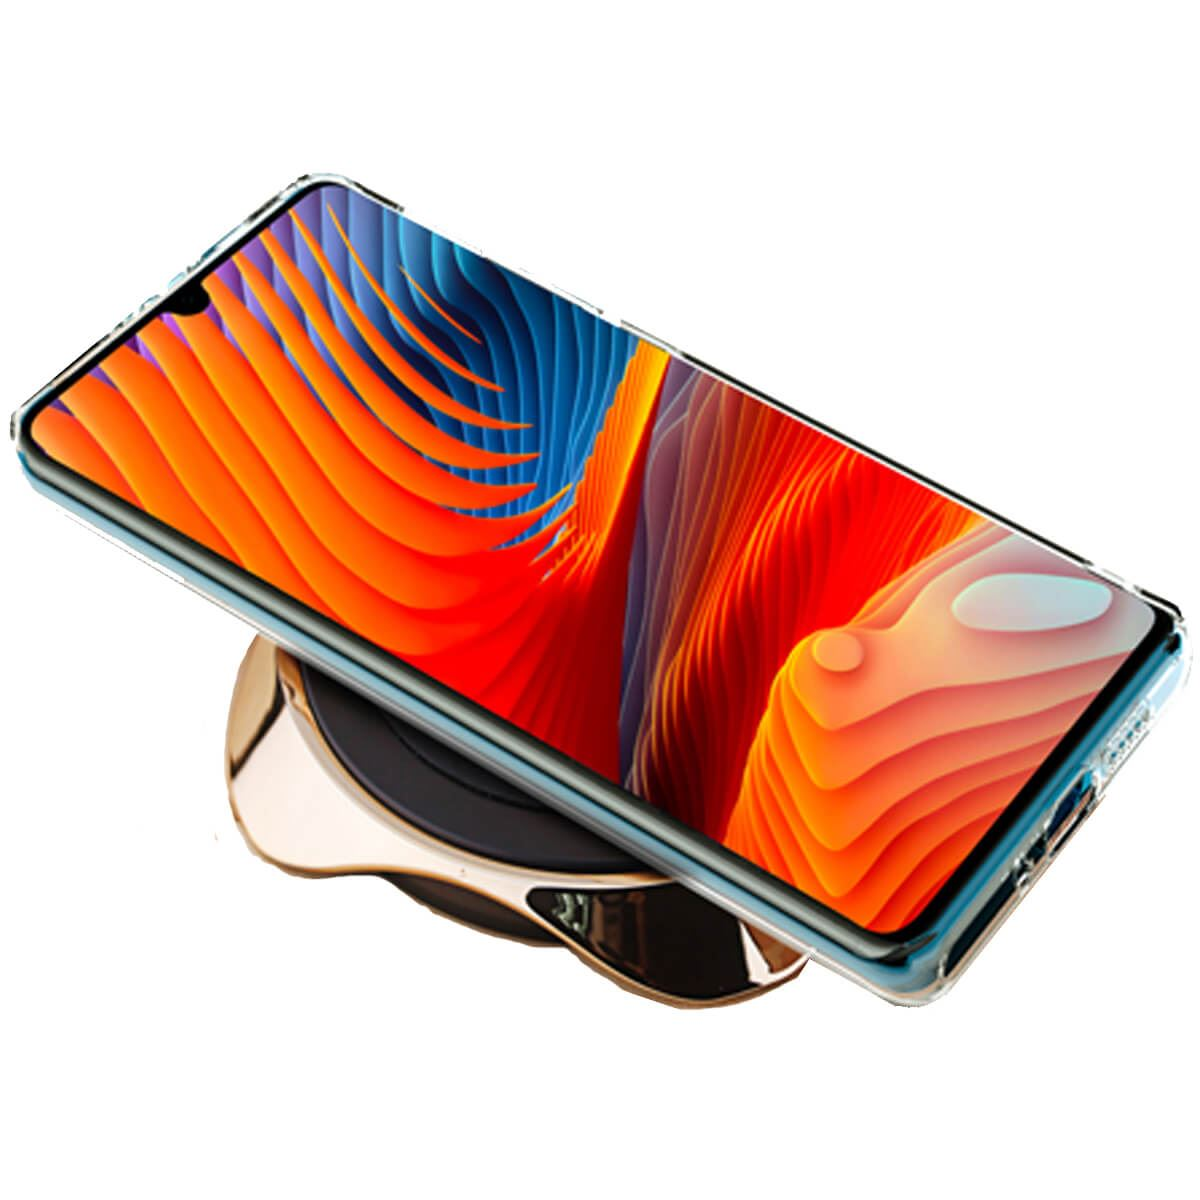 Case-For-Huawei-P20-Pro-P-Smart-Shockproof-Silicone-Protective-Clear-Gel-Cover thumbnail 8